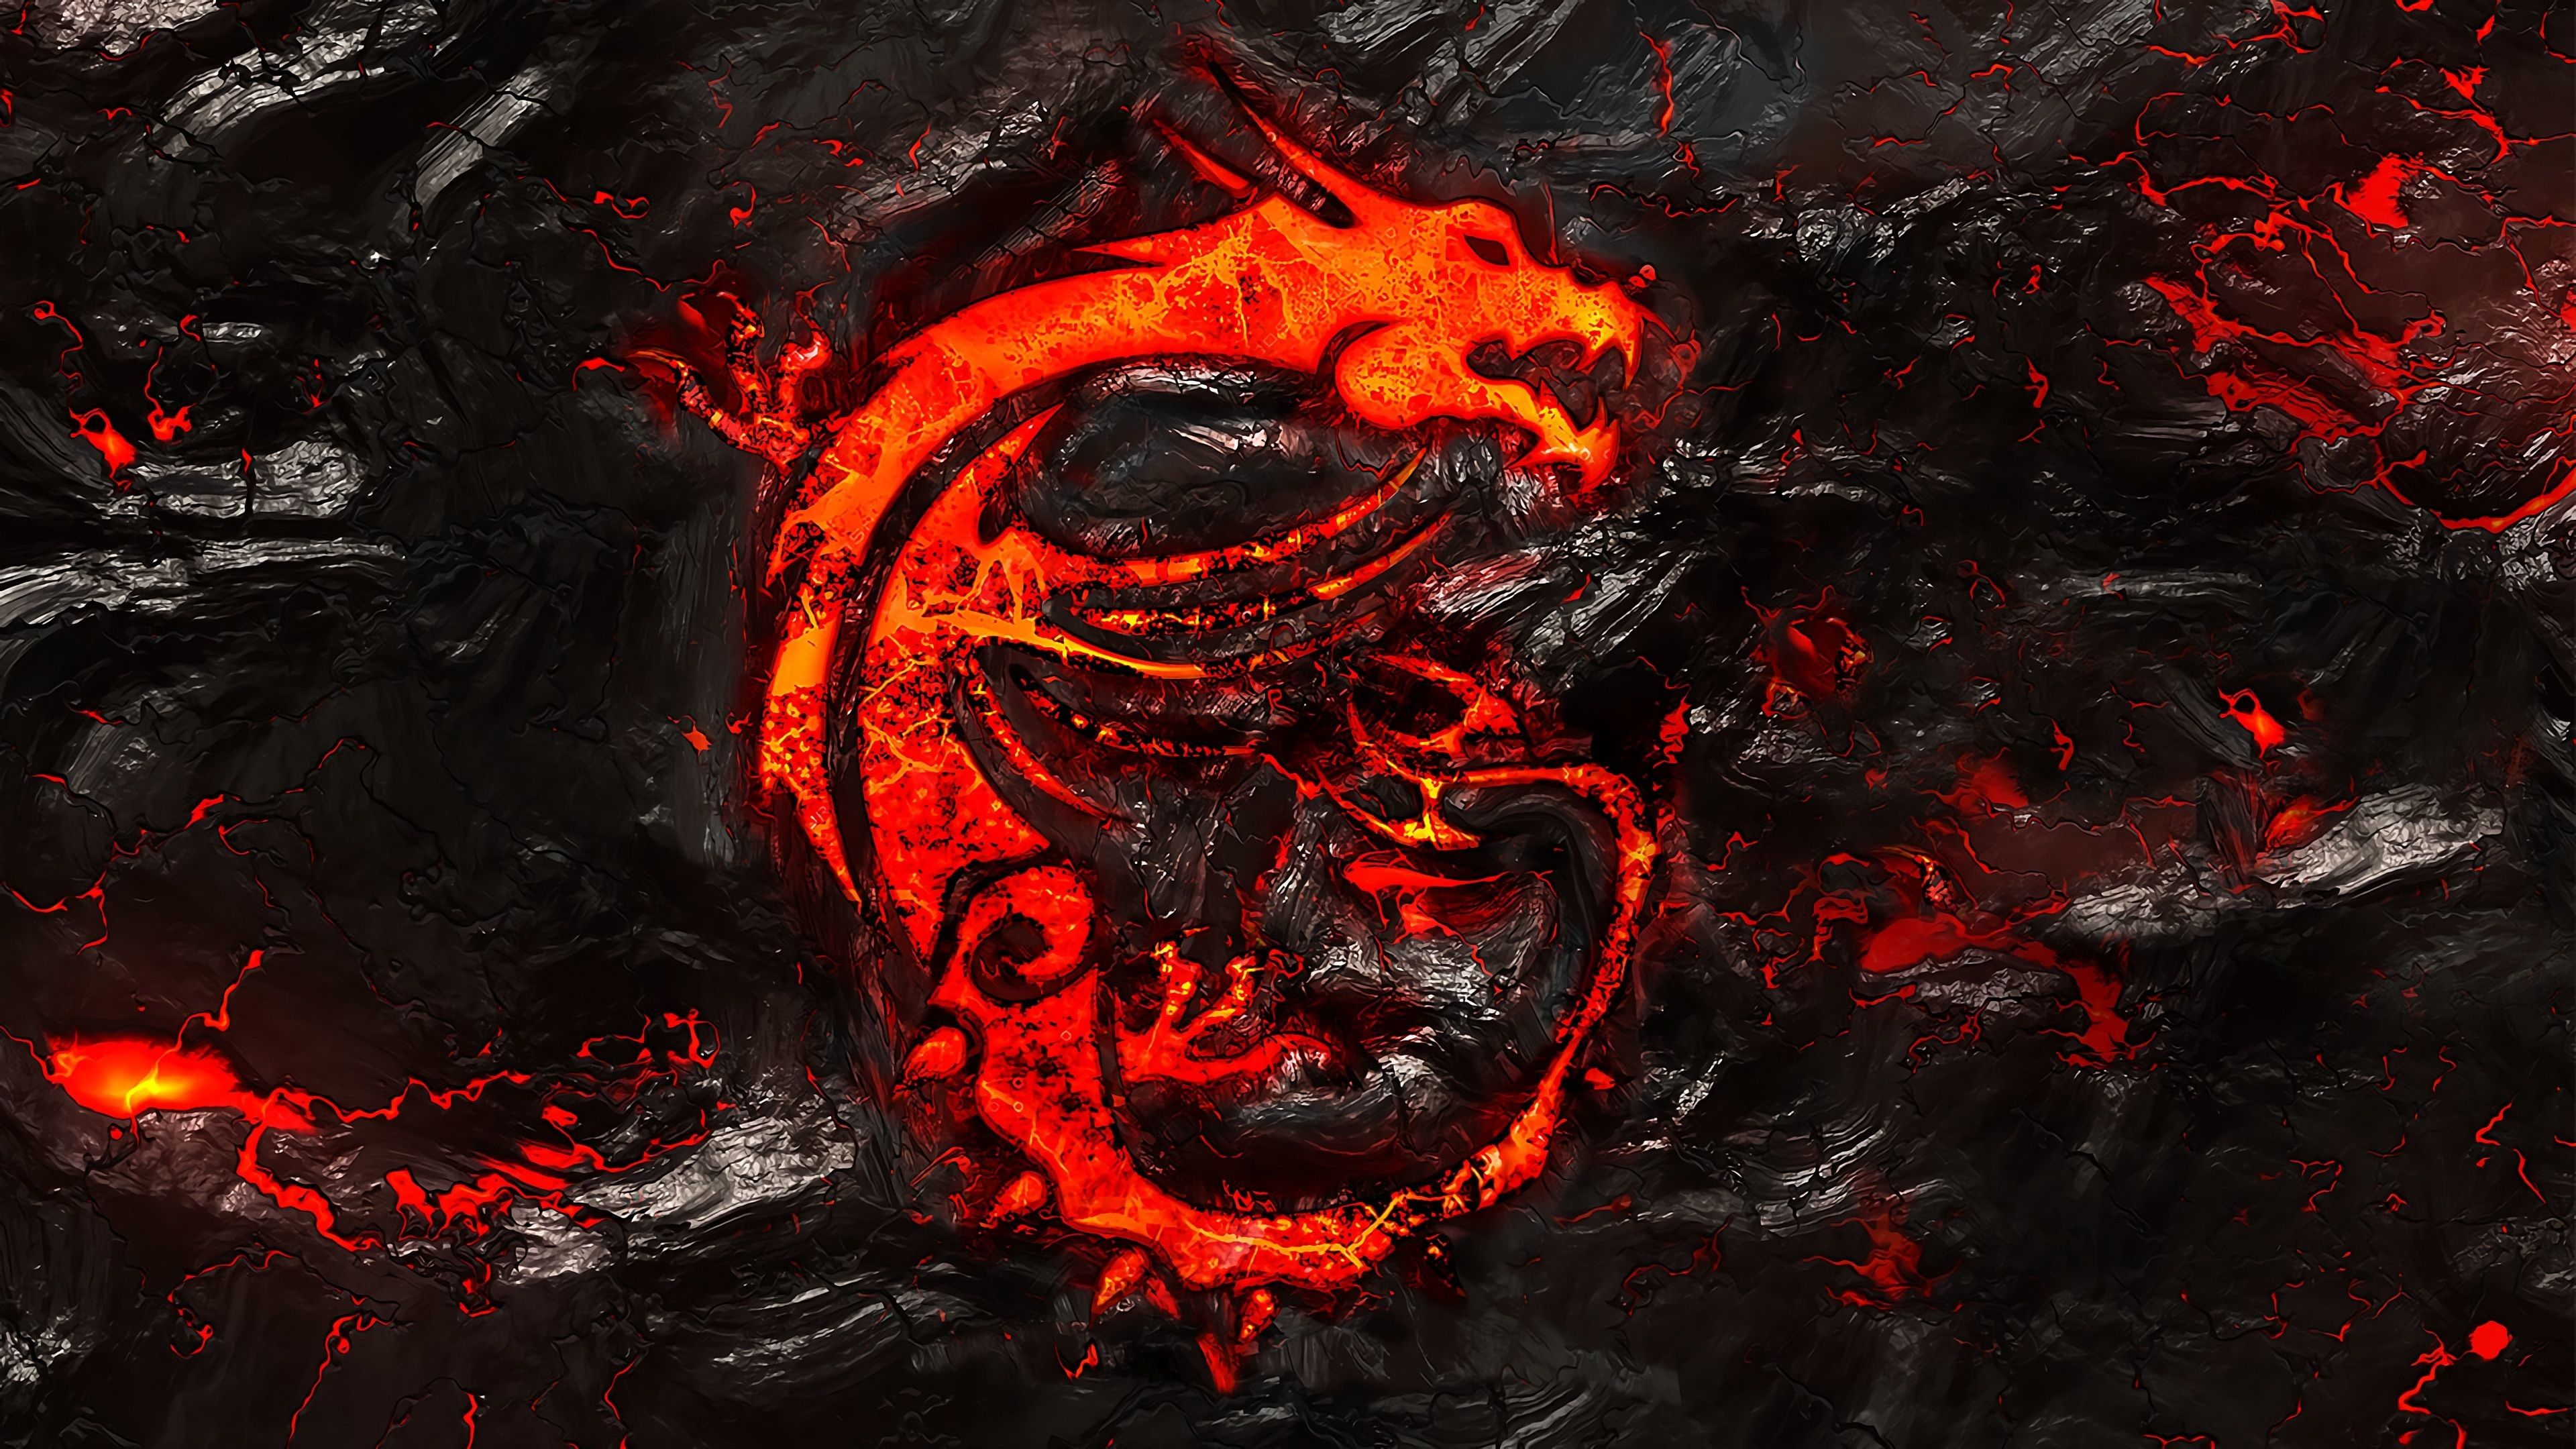 MSI Lava Dragon Wallpaper